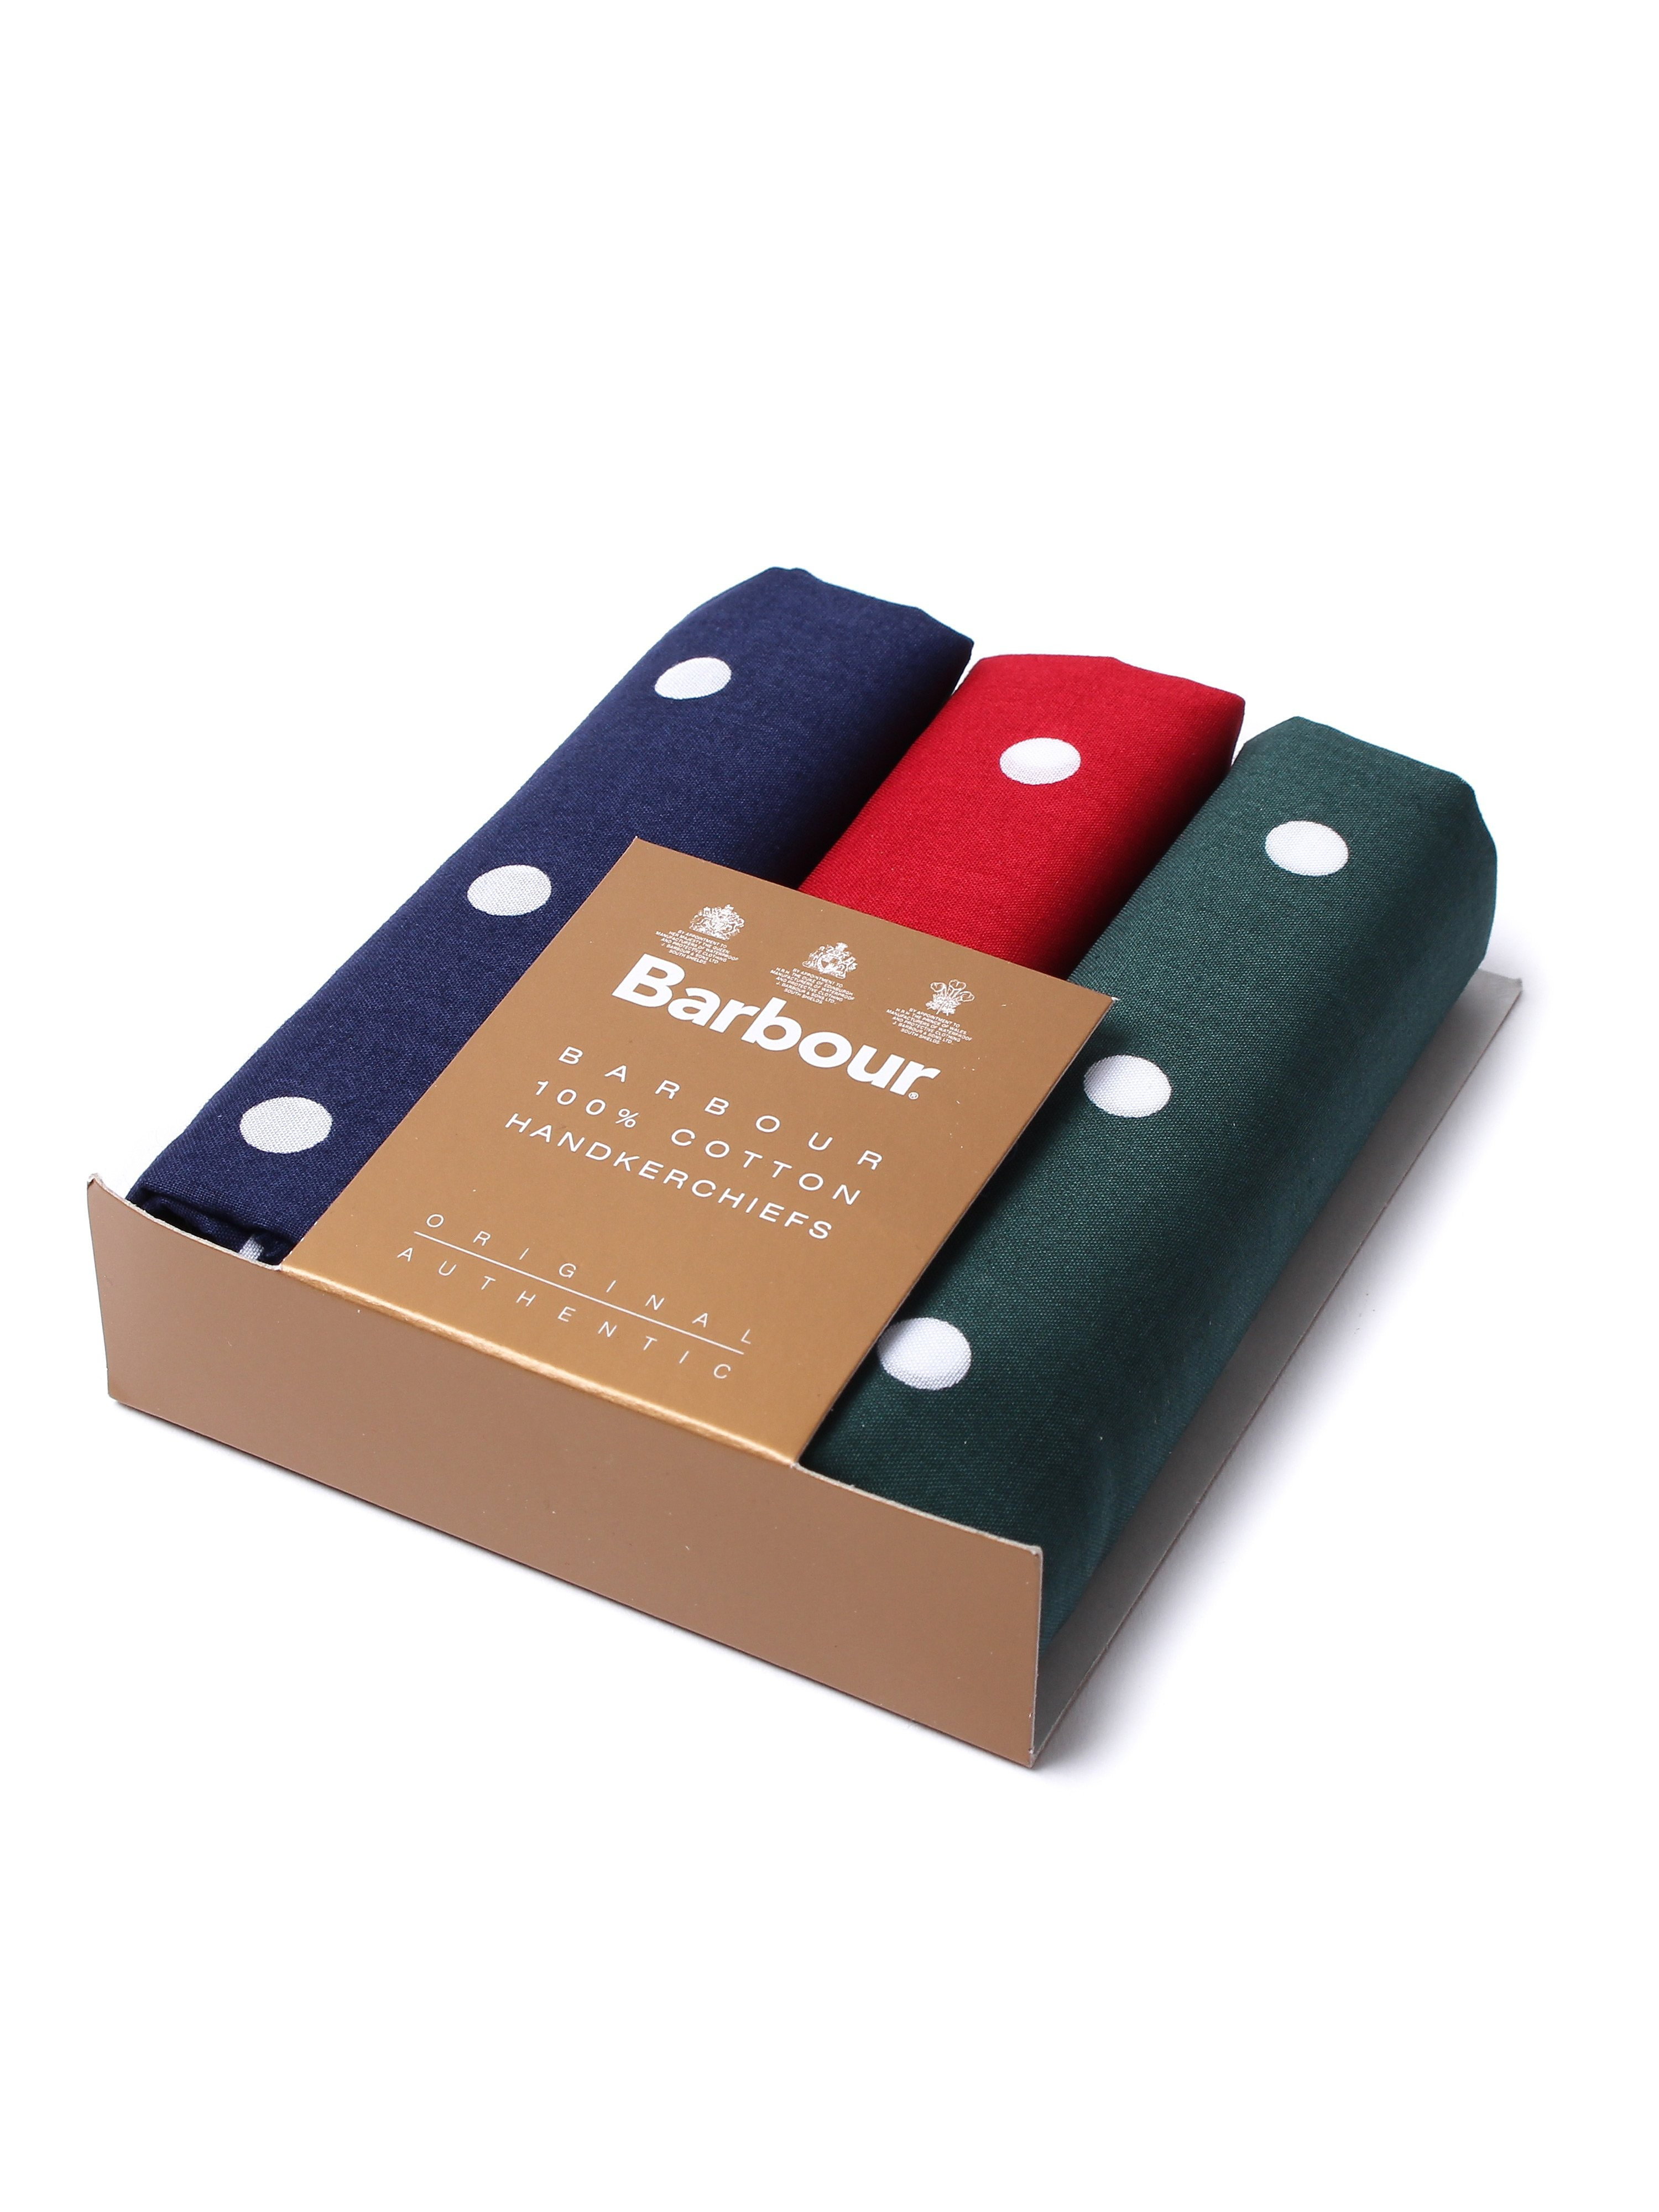 Barbour 3 Pack Spotted Cotton Handkerchiefs - Red, Blue & Green